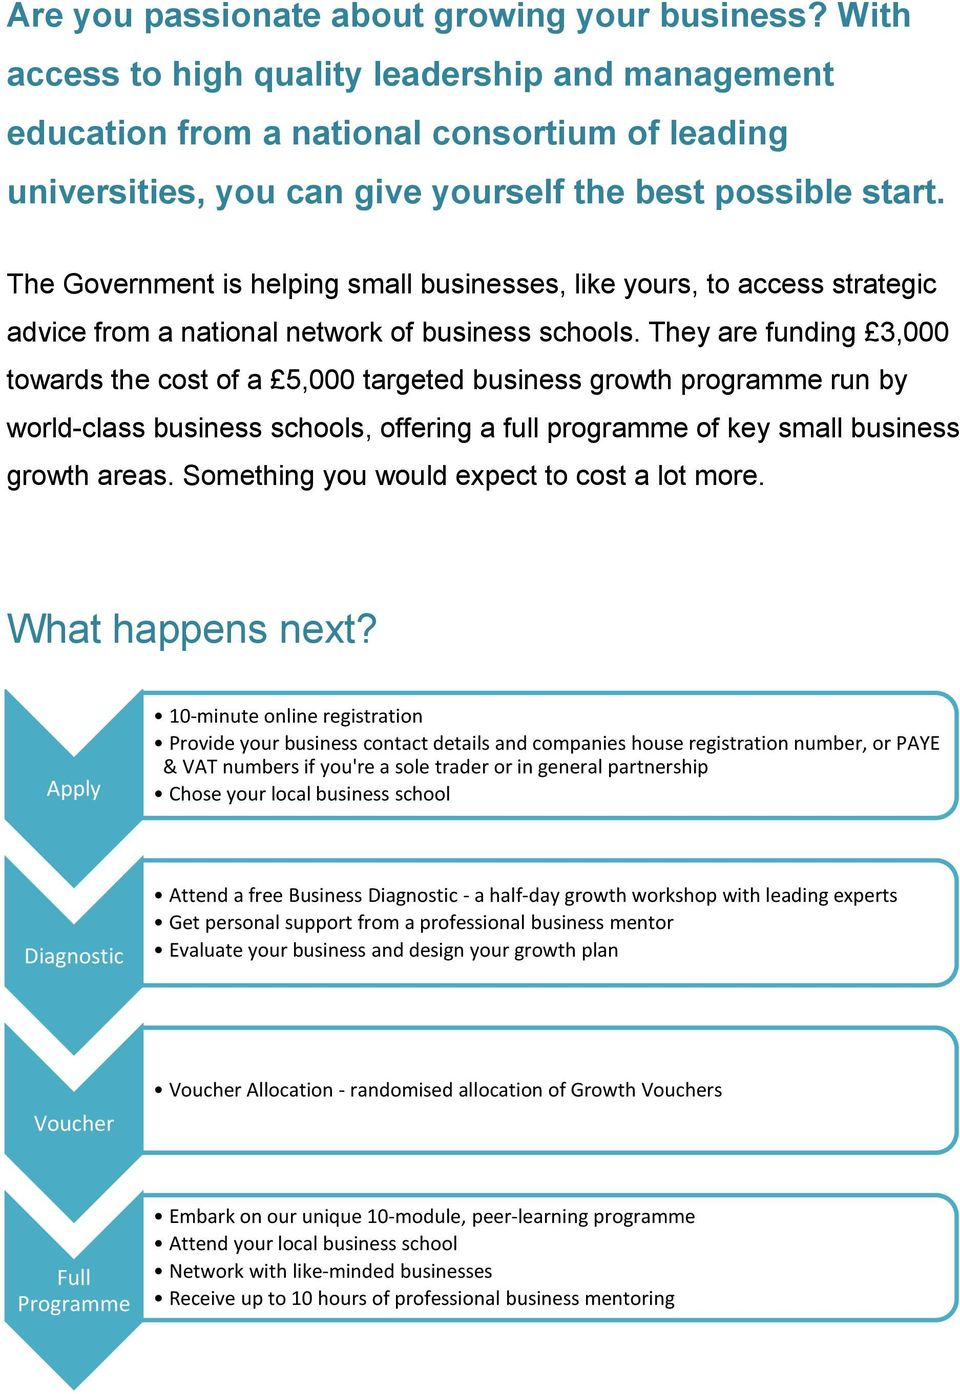 The Government is helping small businesses, like yours, to access strategic advice from a national network of business schools.